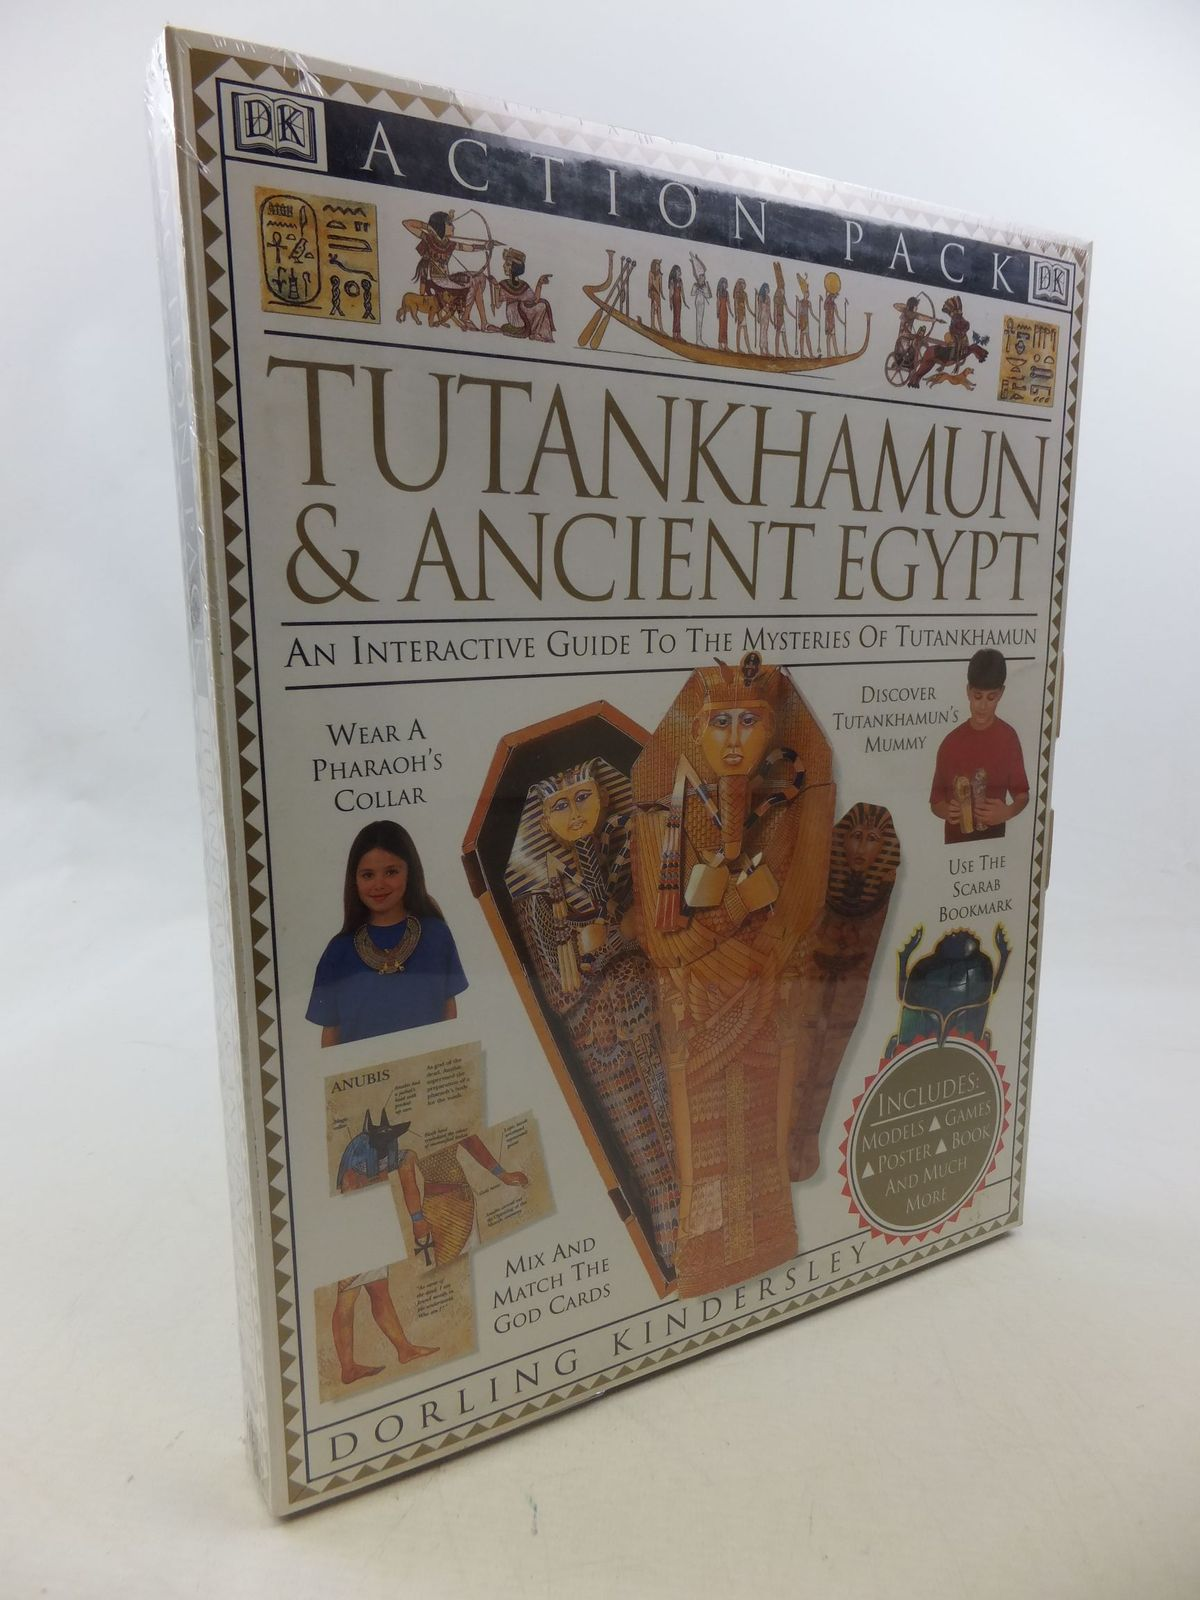 Photo of TUTANKHAMUN & ANCIENT EGYPT AN INTERACTIVE GUIDE TO THE MYSTERIES OF TUTANKHAMUN published by Dorling Kindersley (STOCK CODE: 2112950)  for sale by Stella & Rose's Books